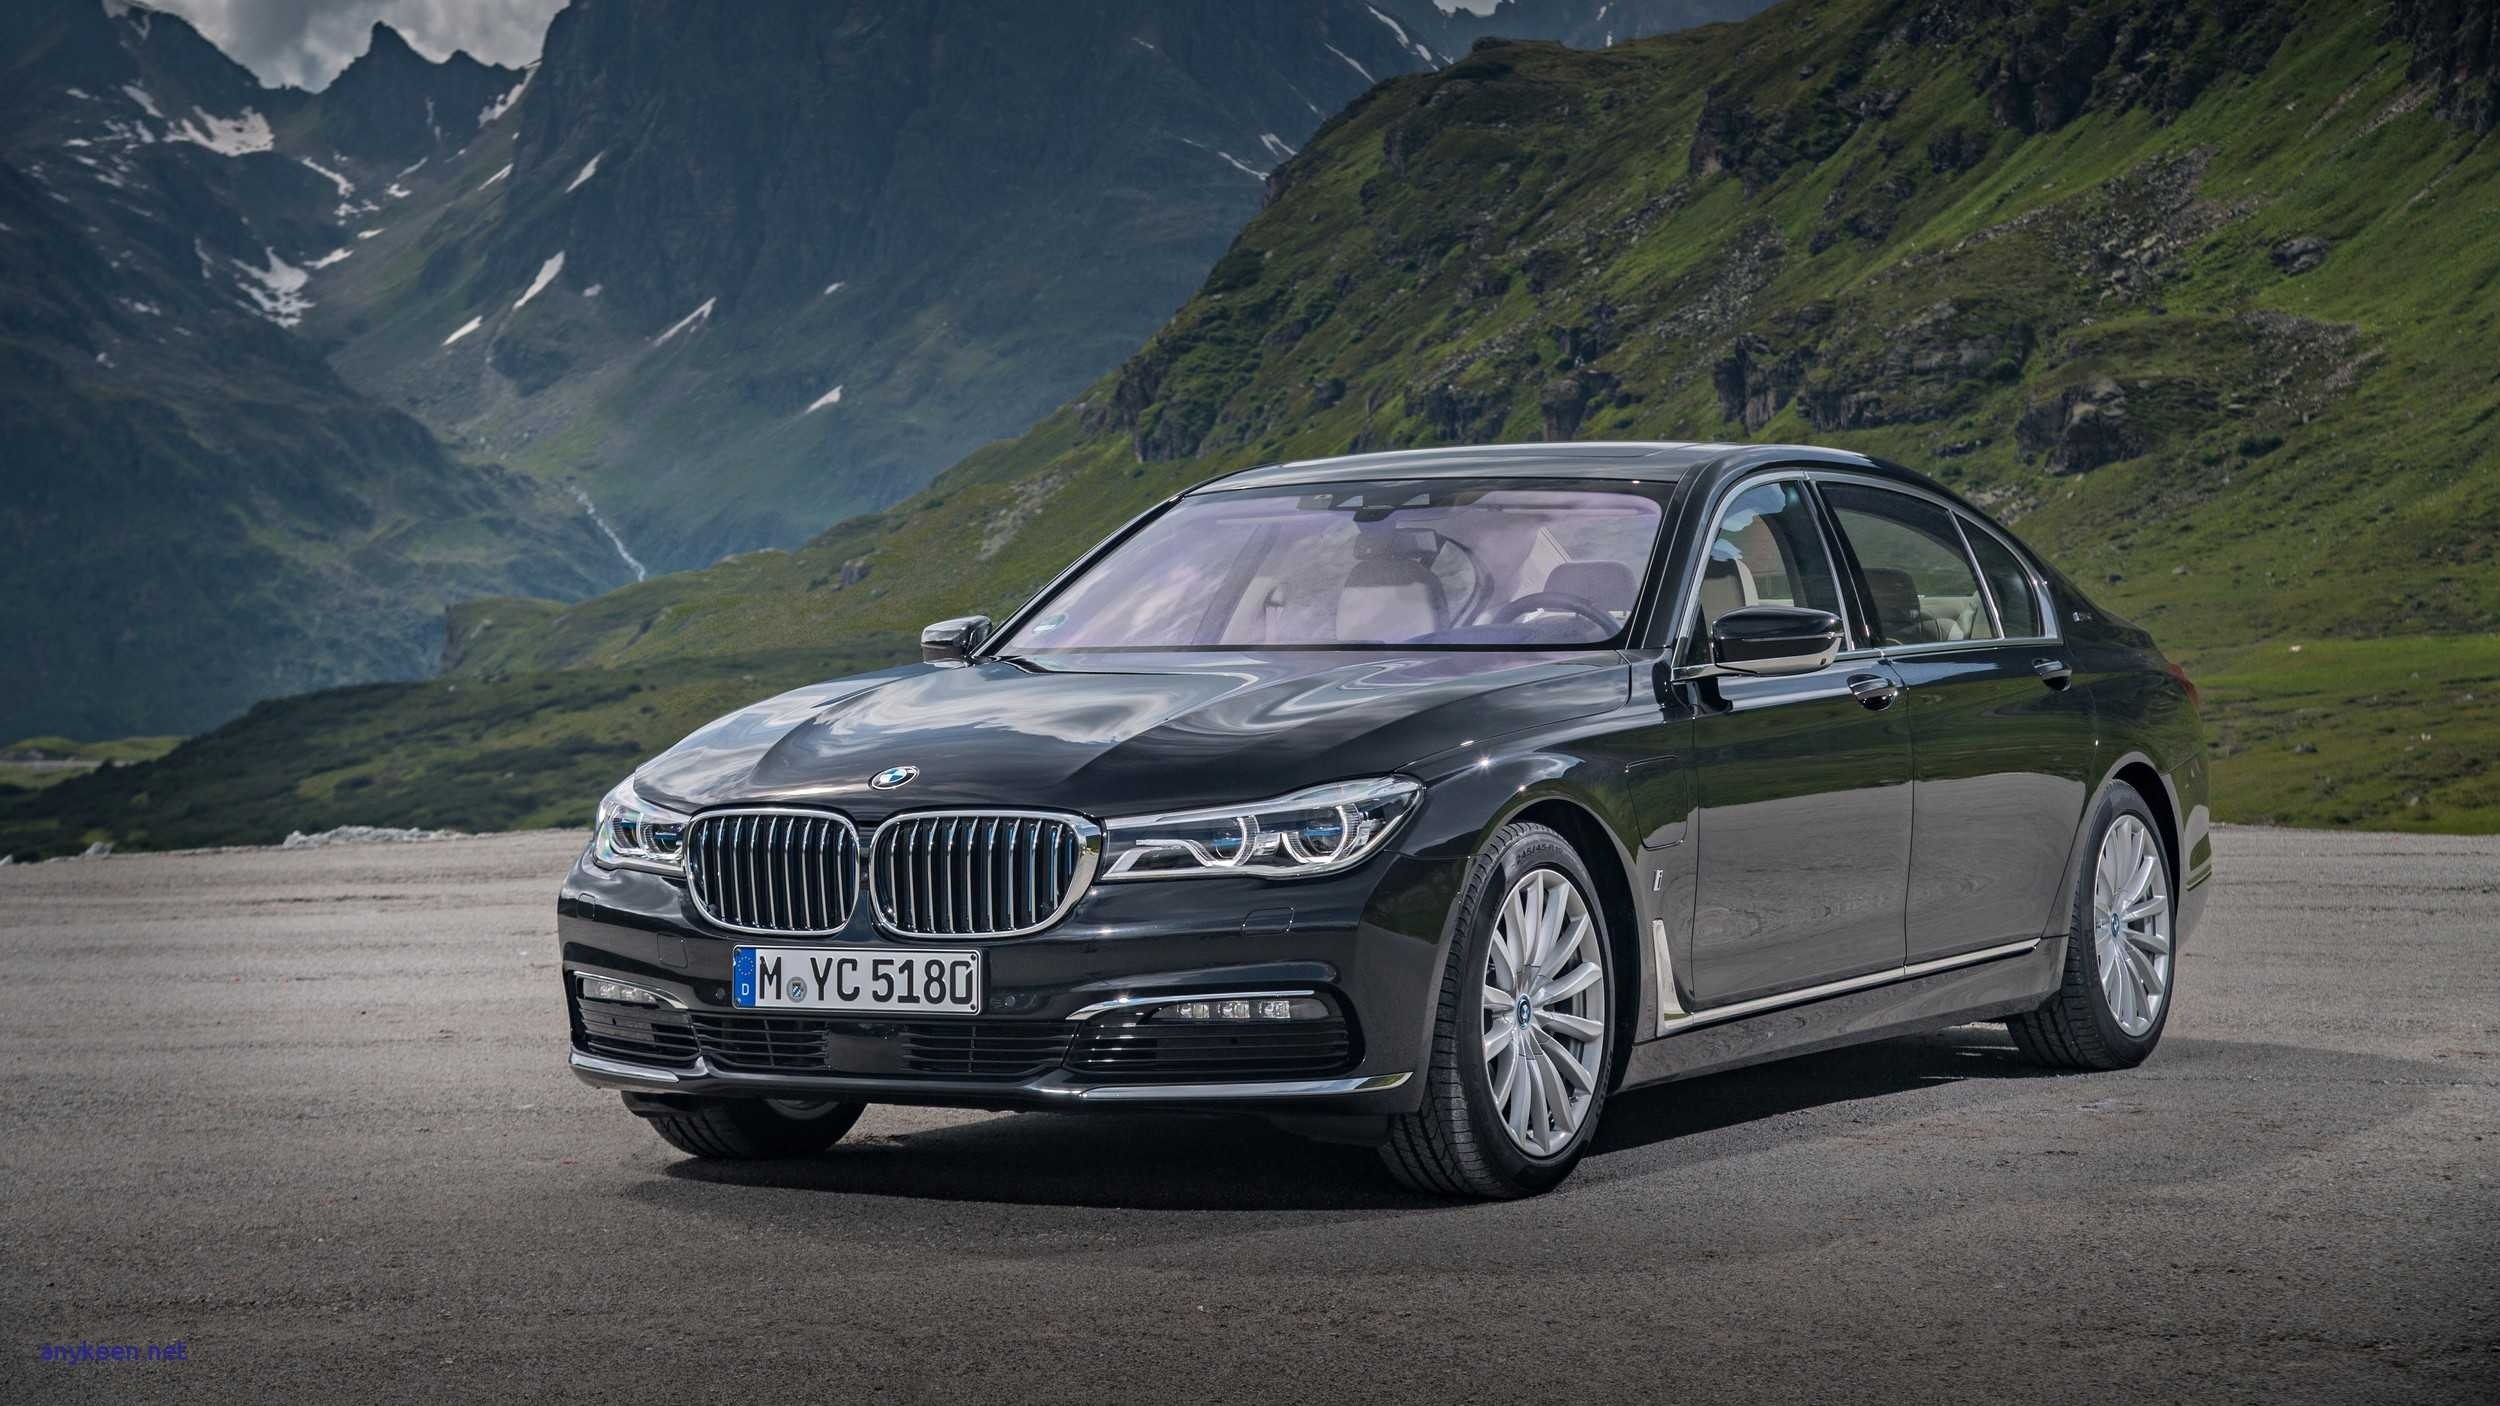 69 A 2020 BMW 7 Series Perfection New Price and Release date